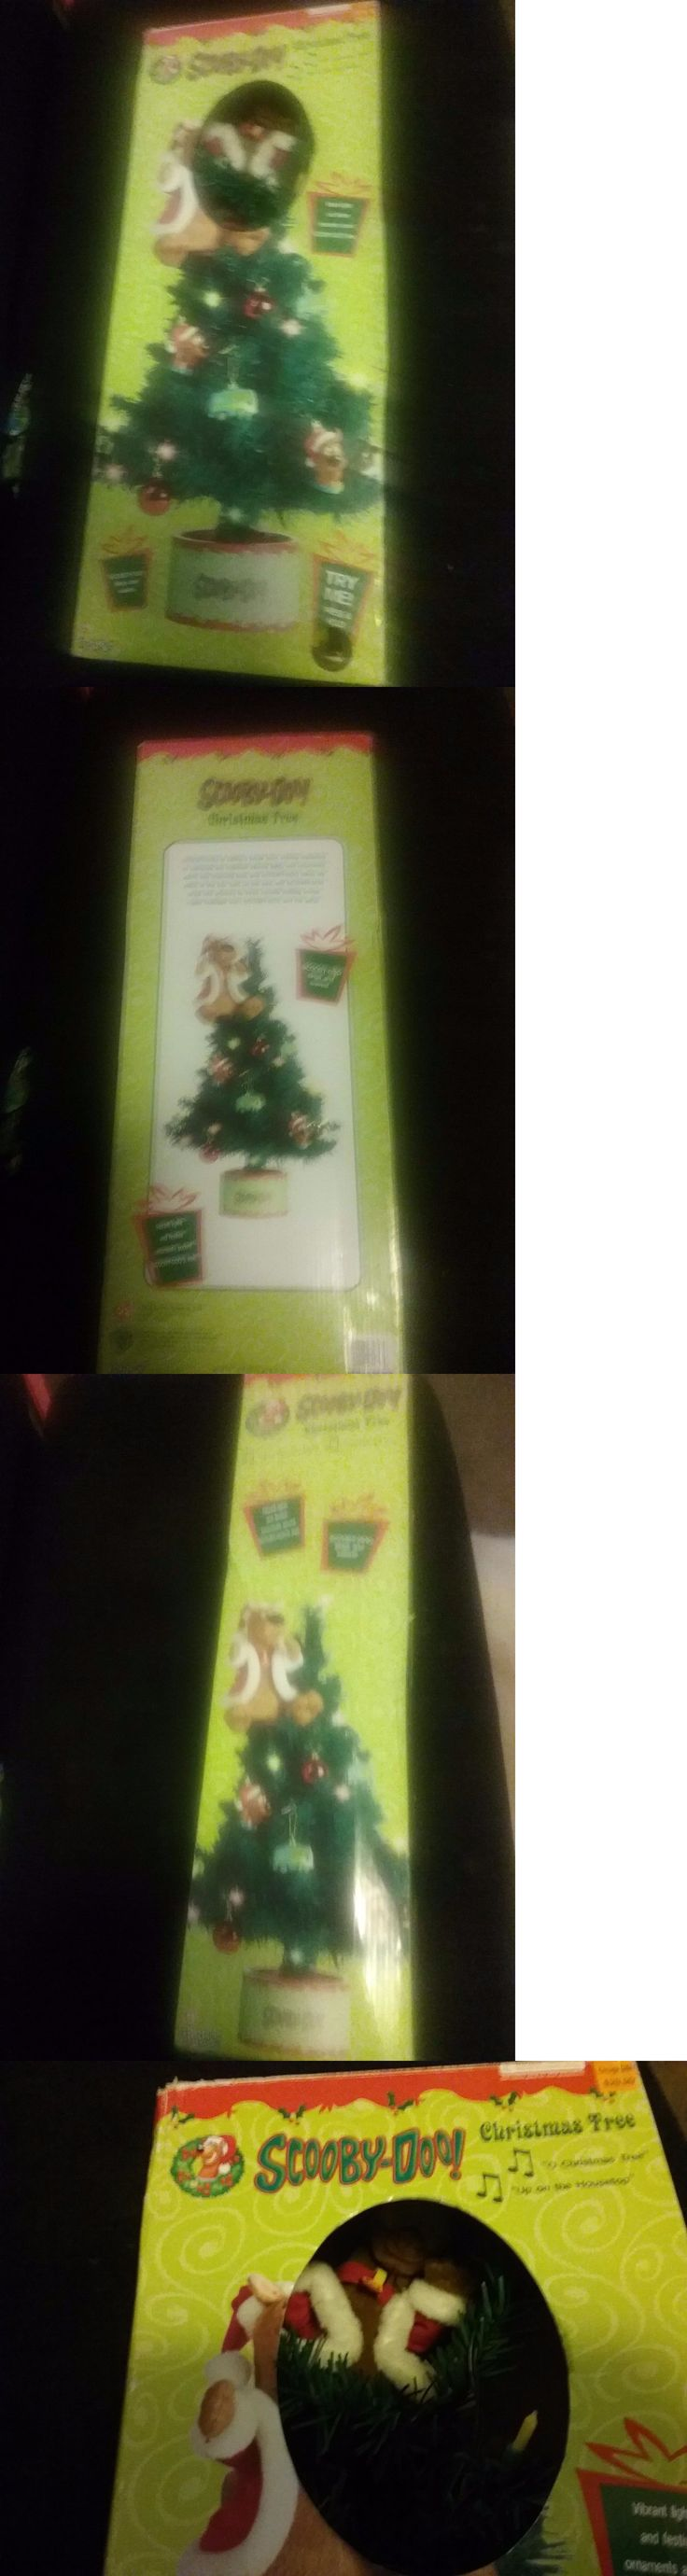 Scooby-Doo 11747: Scooby-Doo Gemmy Industries Christmas Tree Animated Singing Ornamesnts Htf New -> BUY IT NOW ONLY: $125.99 on eBay!